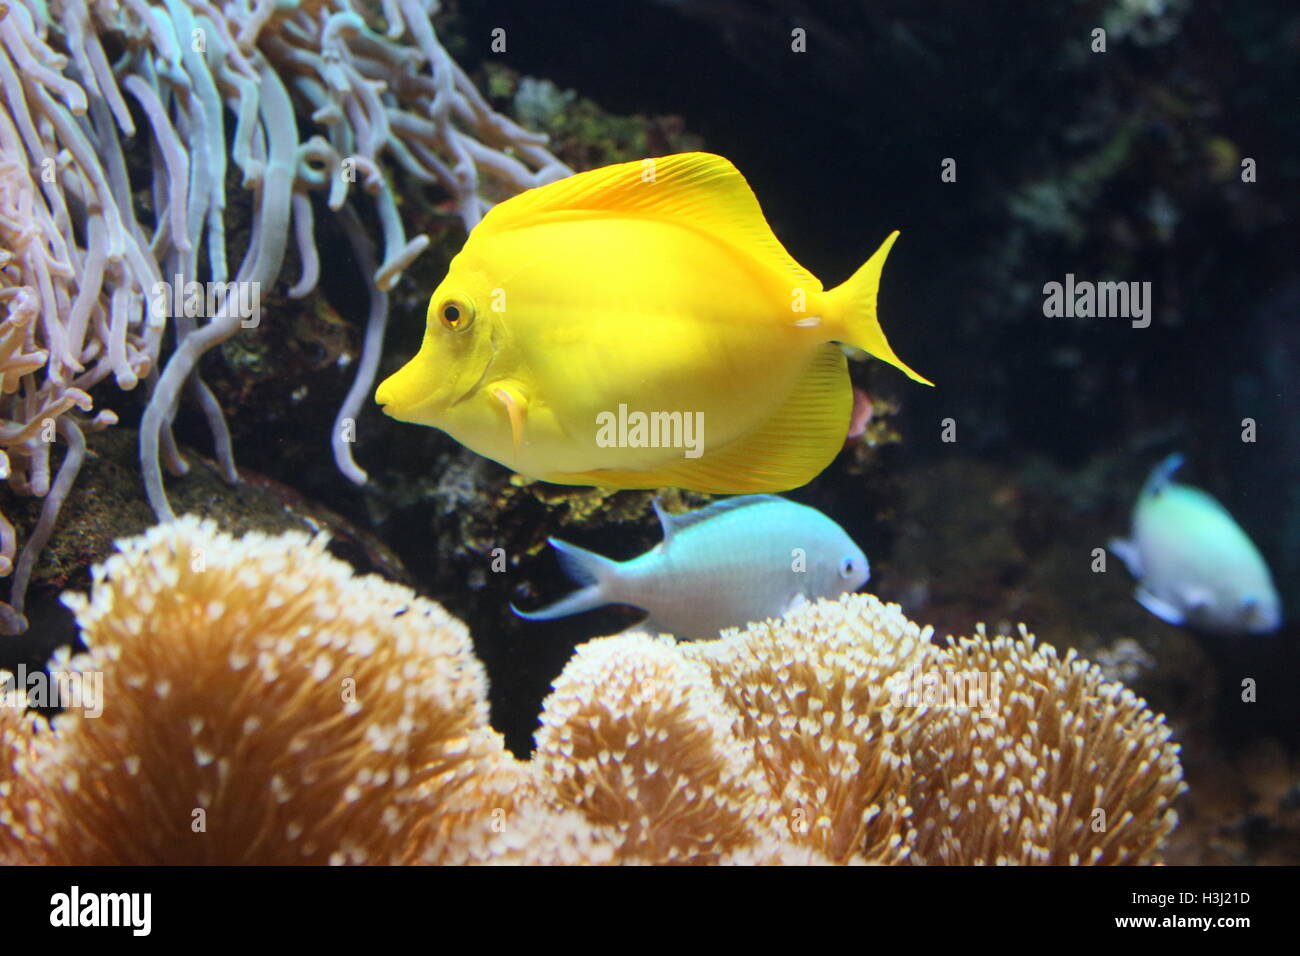 Yellow Tang Surgeonfish (Zebrasoma flavescens), native to the Indian Ocean & Pacific - Stock Image